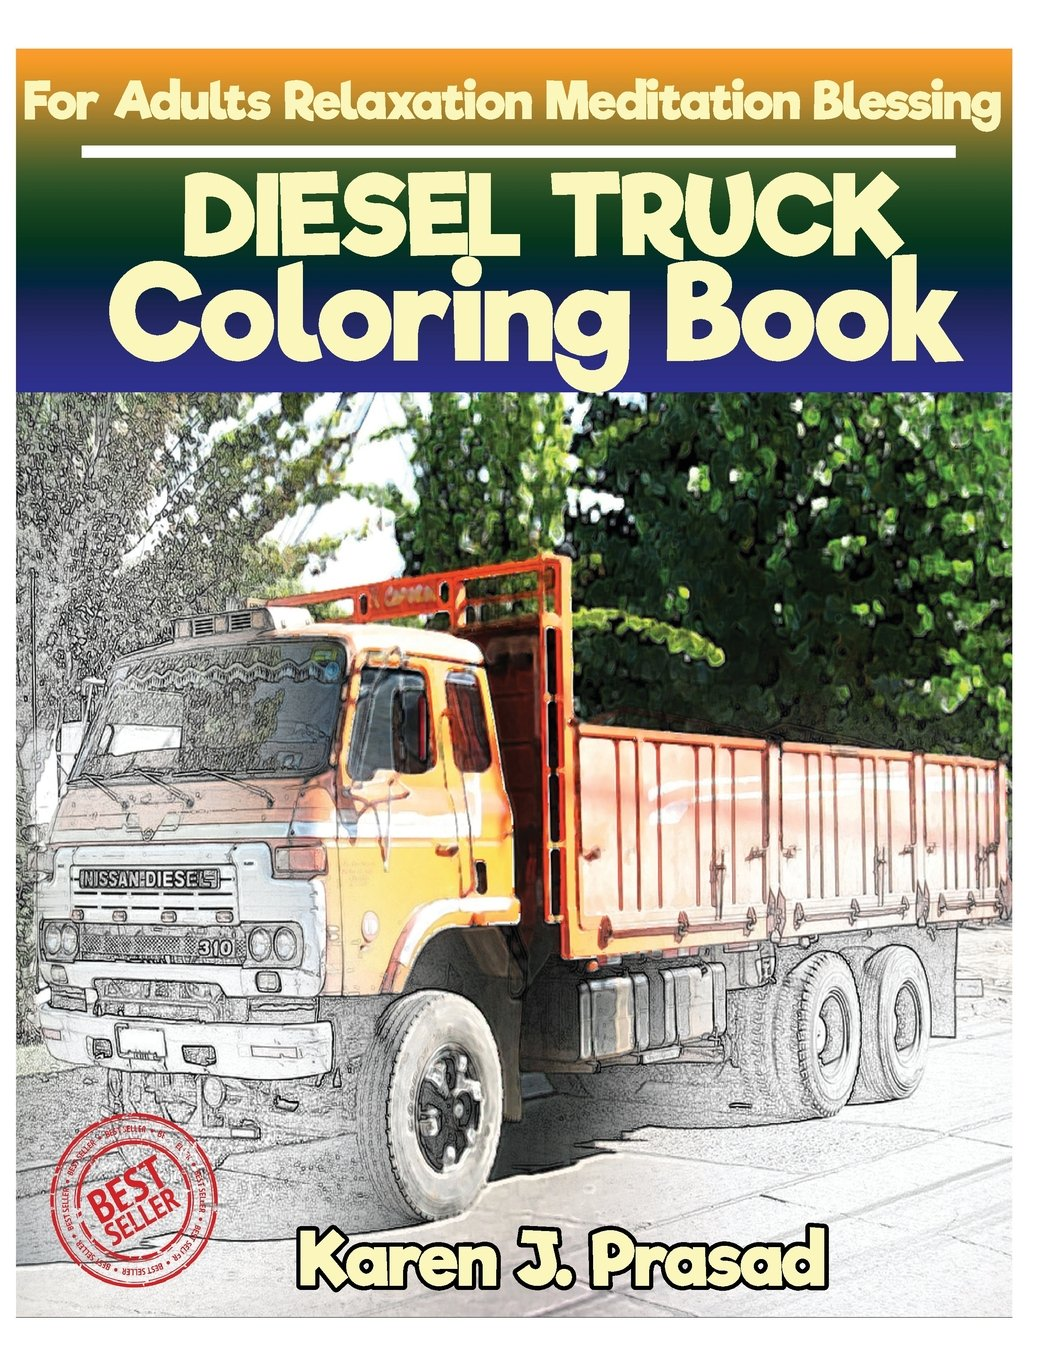 - Amazon.com: DIESEL TRUCK Coloring Book For Adults Relaxation